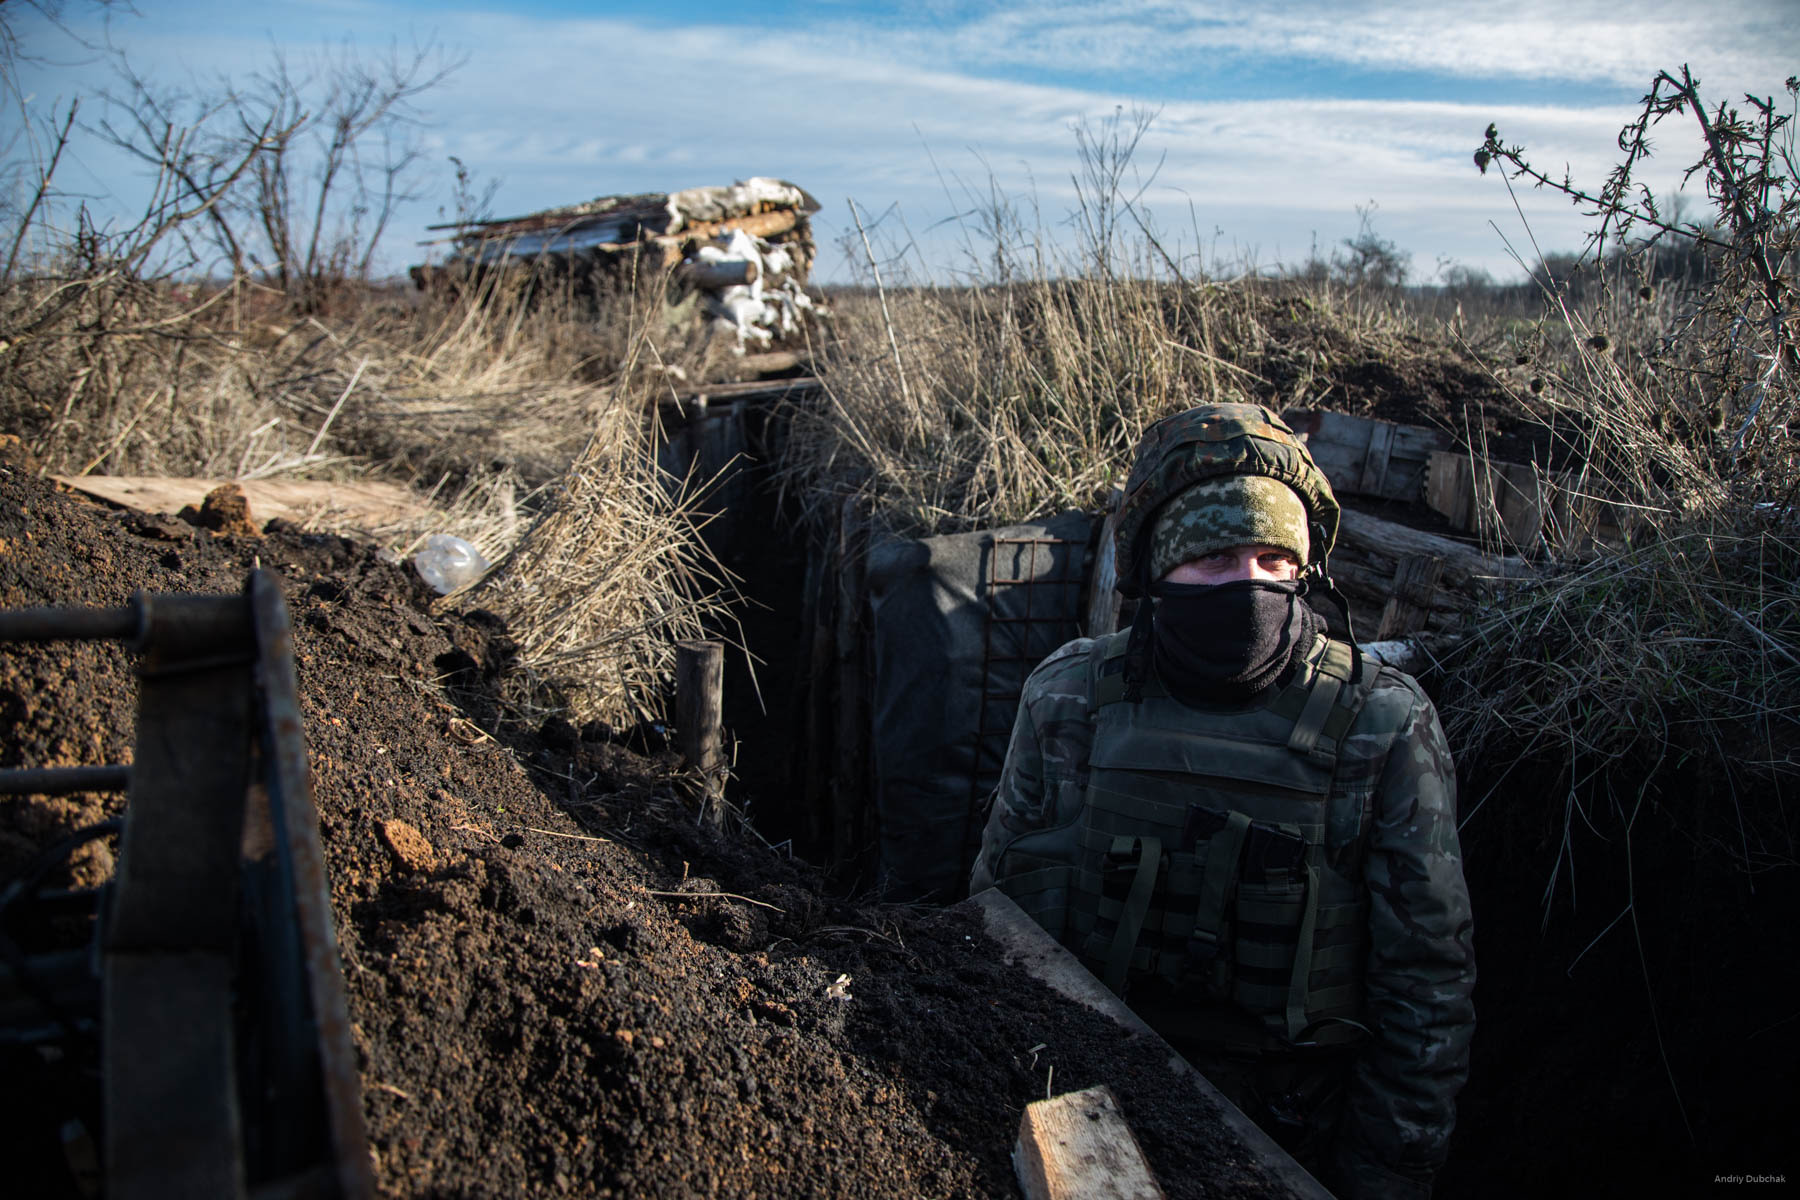 A fighter in the line of trenches at the front, near Popanskaya, December 2017.